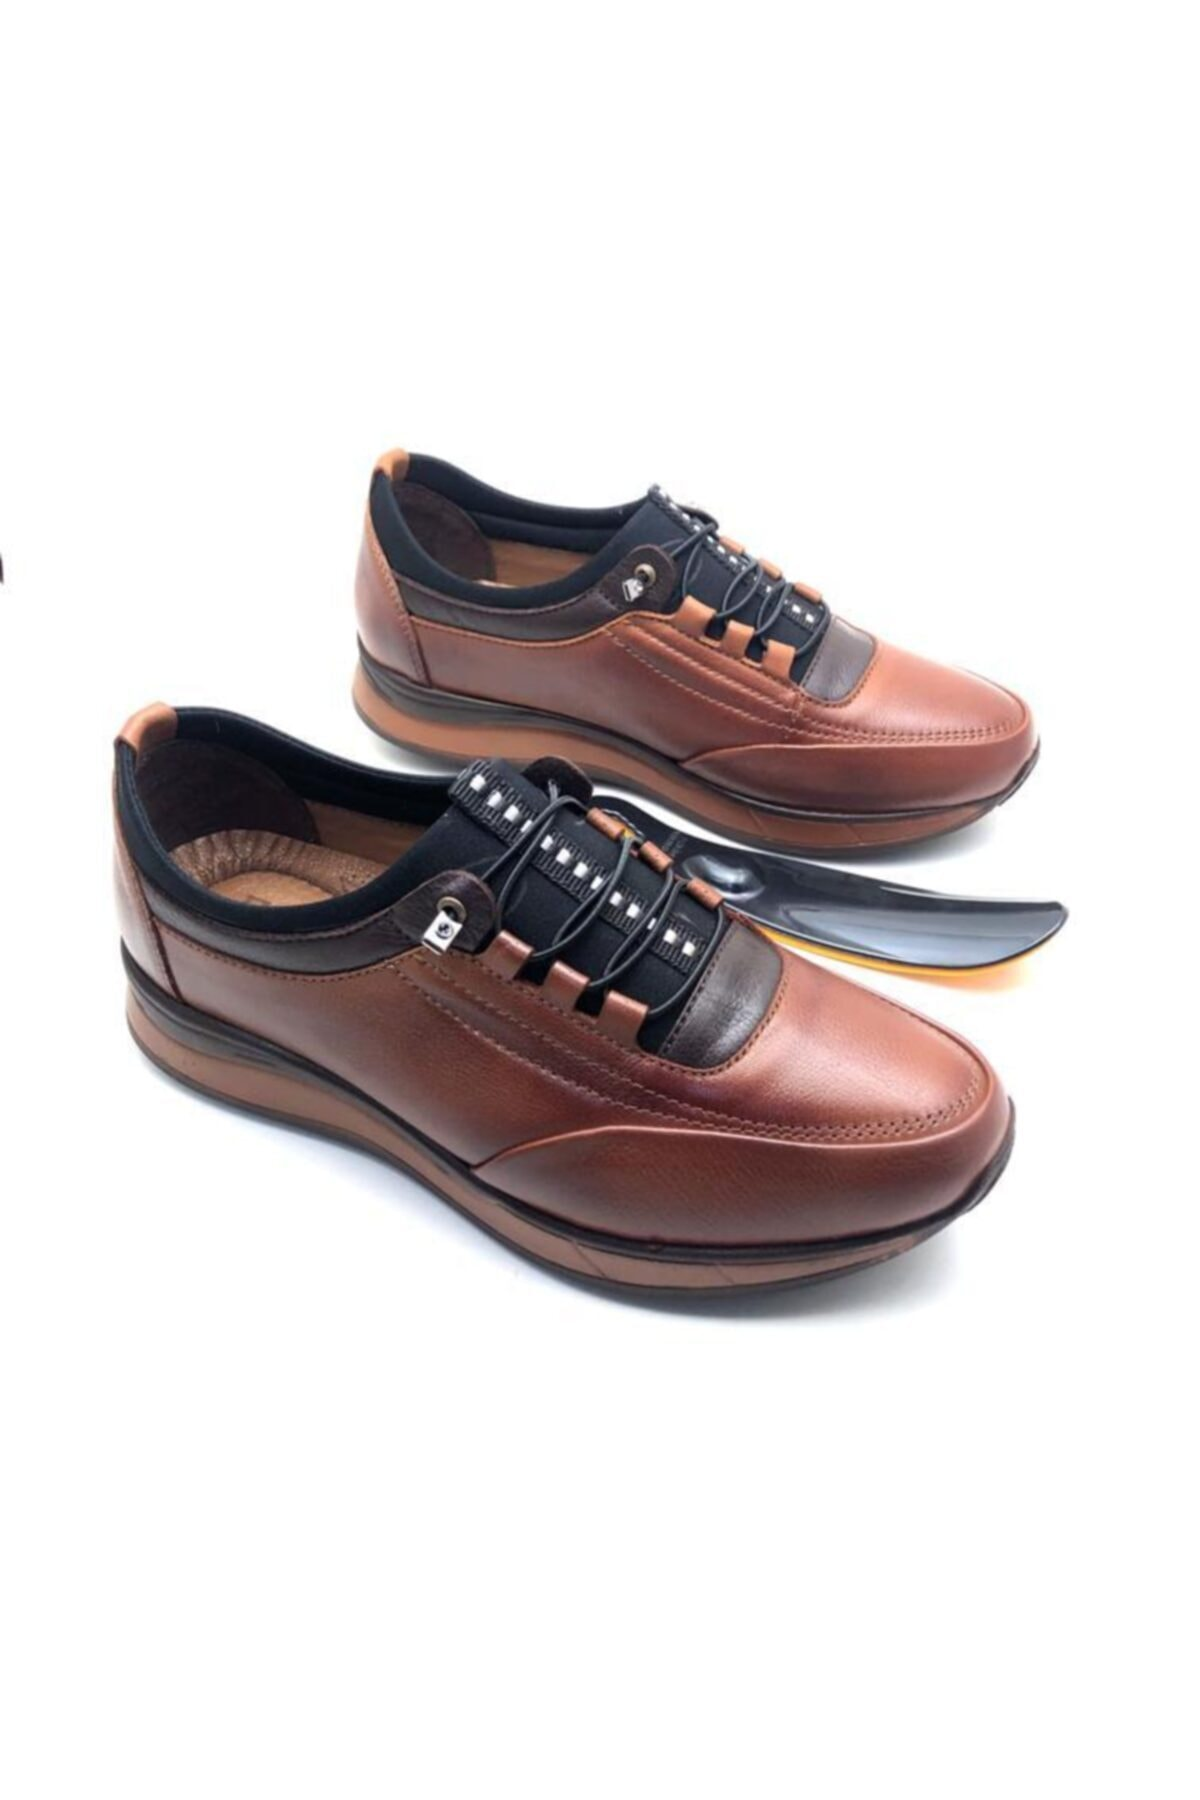 Mens Brown Genuine Leather Full Orthopedic Shoes